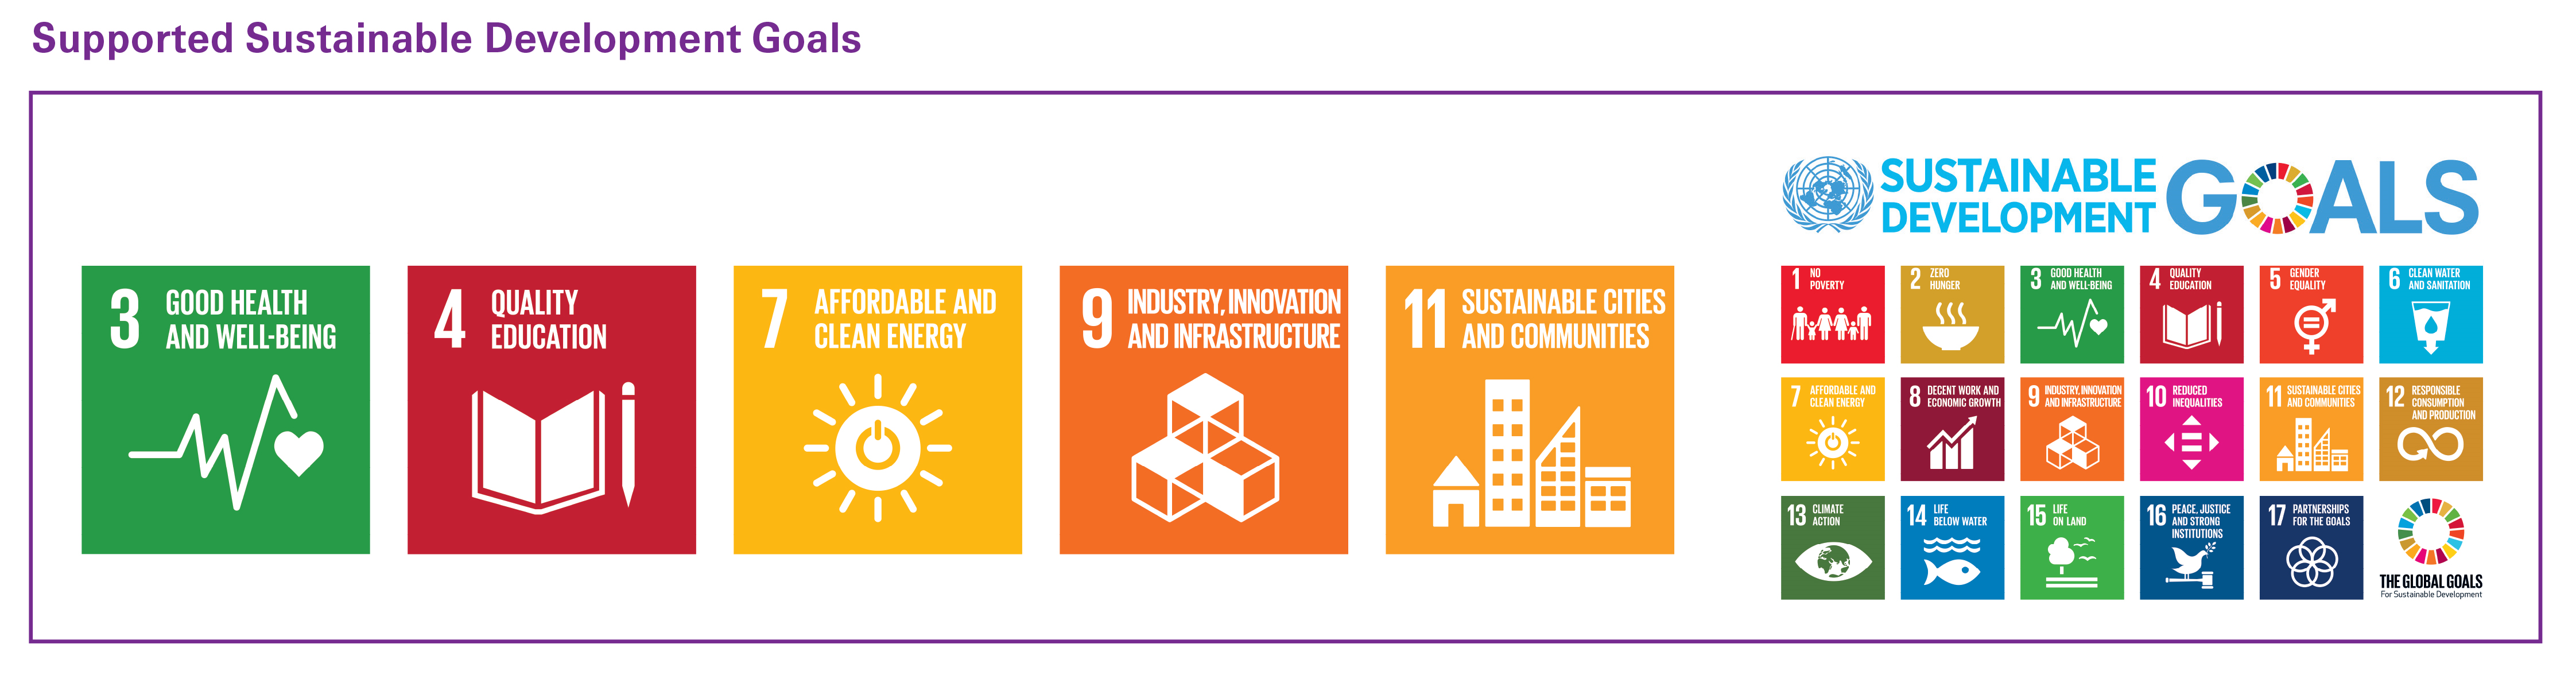 List of Supported Sustainable Development Goals as adopted by United Nations